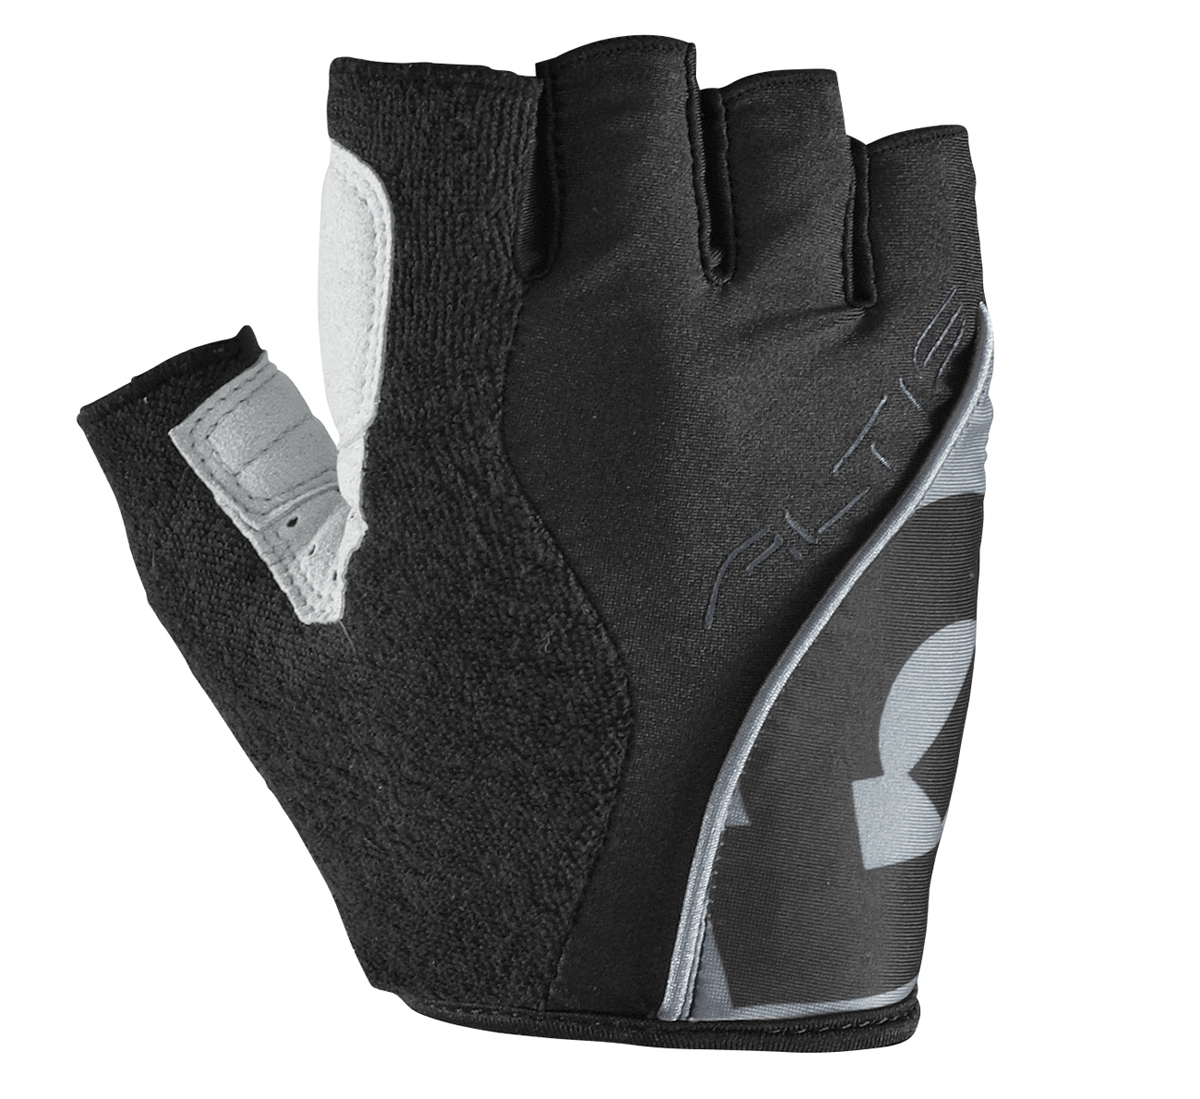 661-Altis-Short-Finger-Cycling-Gloves-BLACK-SILVER-or-WHITE-BLACK-6734 thumbnail 5